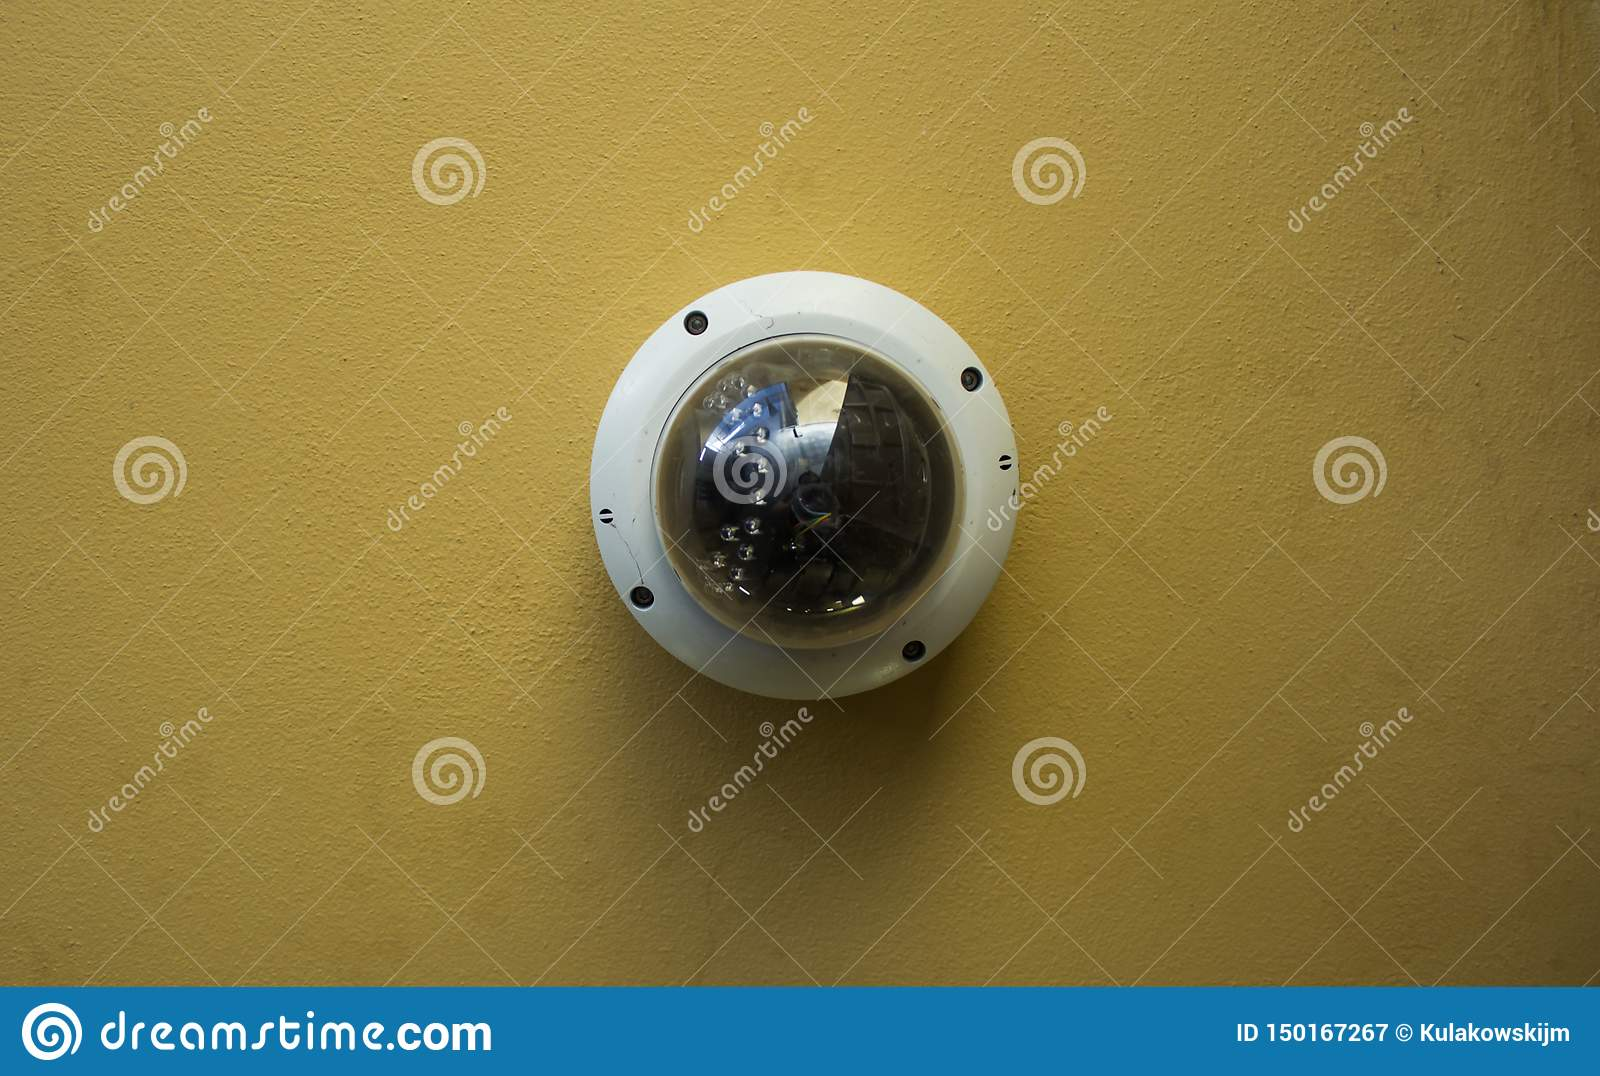 Modern round security camera on a yellow ceiling